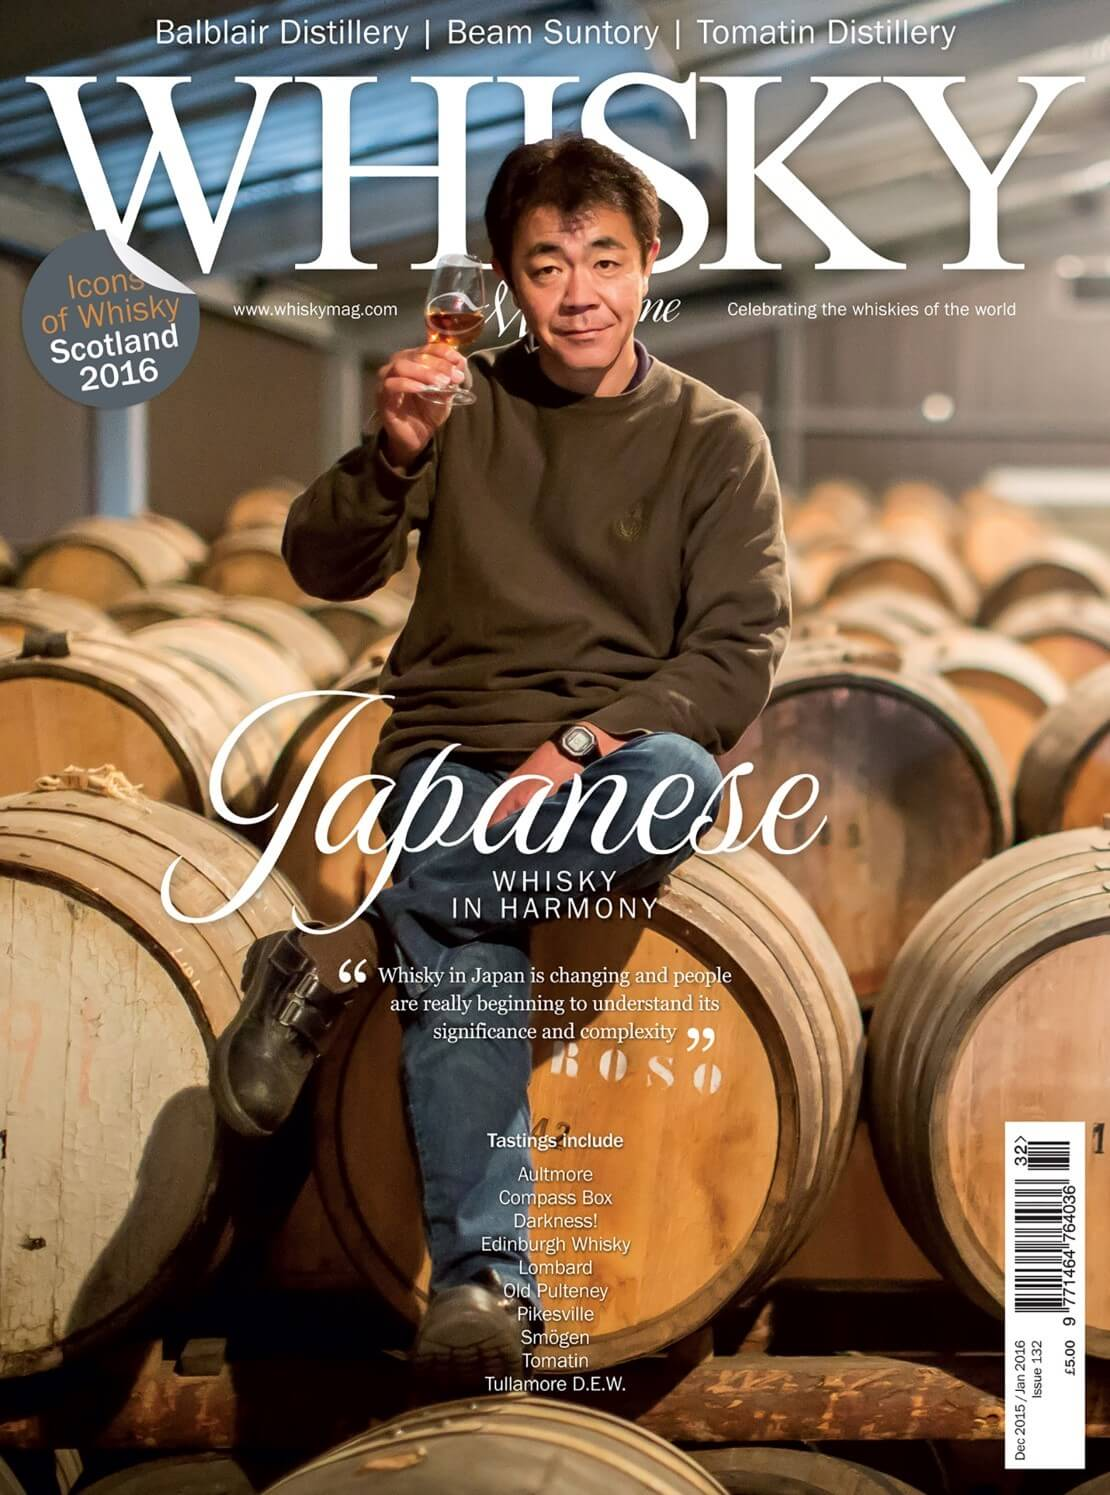 Japan Whisky In Harmony Balblair Distillery Beam Suntory Tomatin Distillery